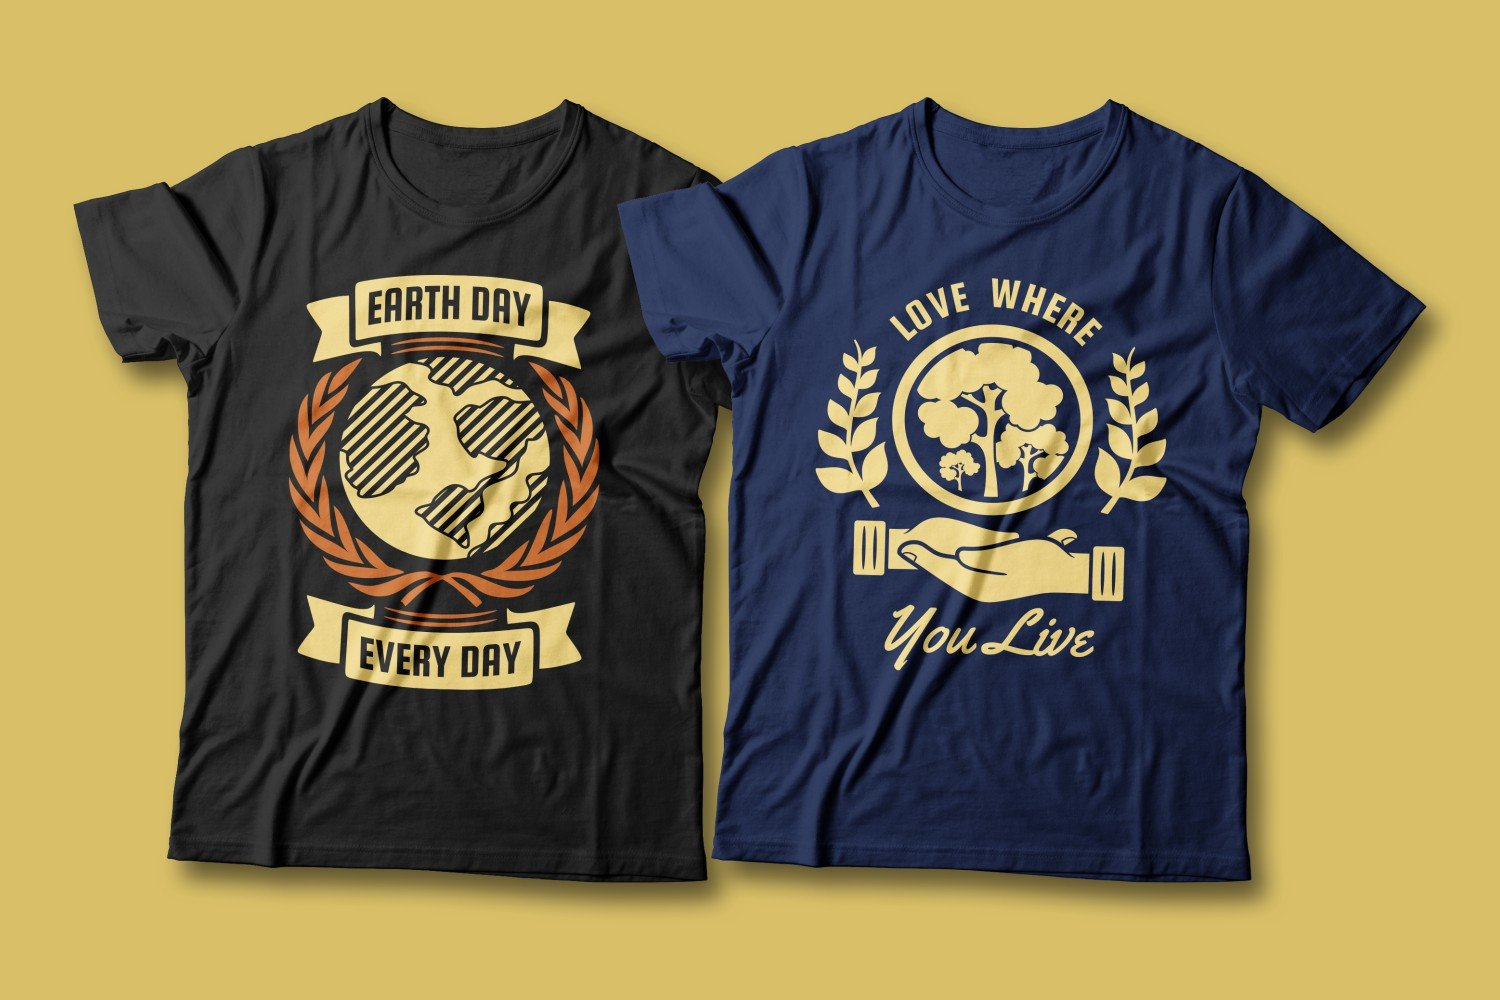 Two T-shirts - blue and black. Both are about the planet and nature conservation.